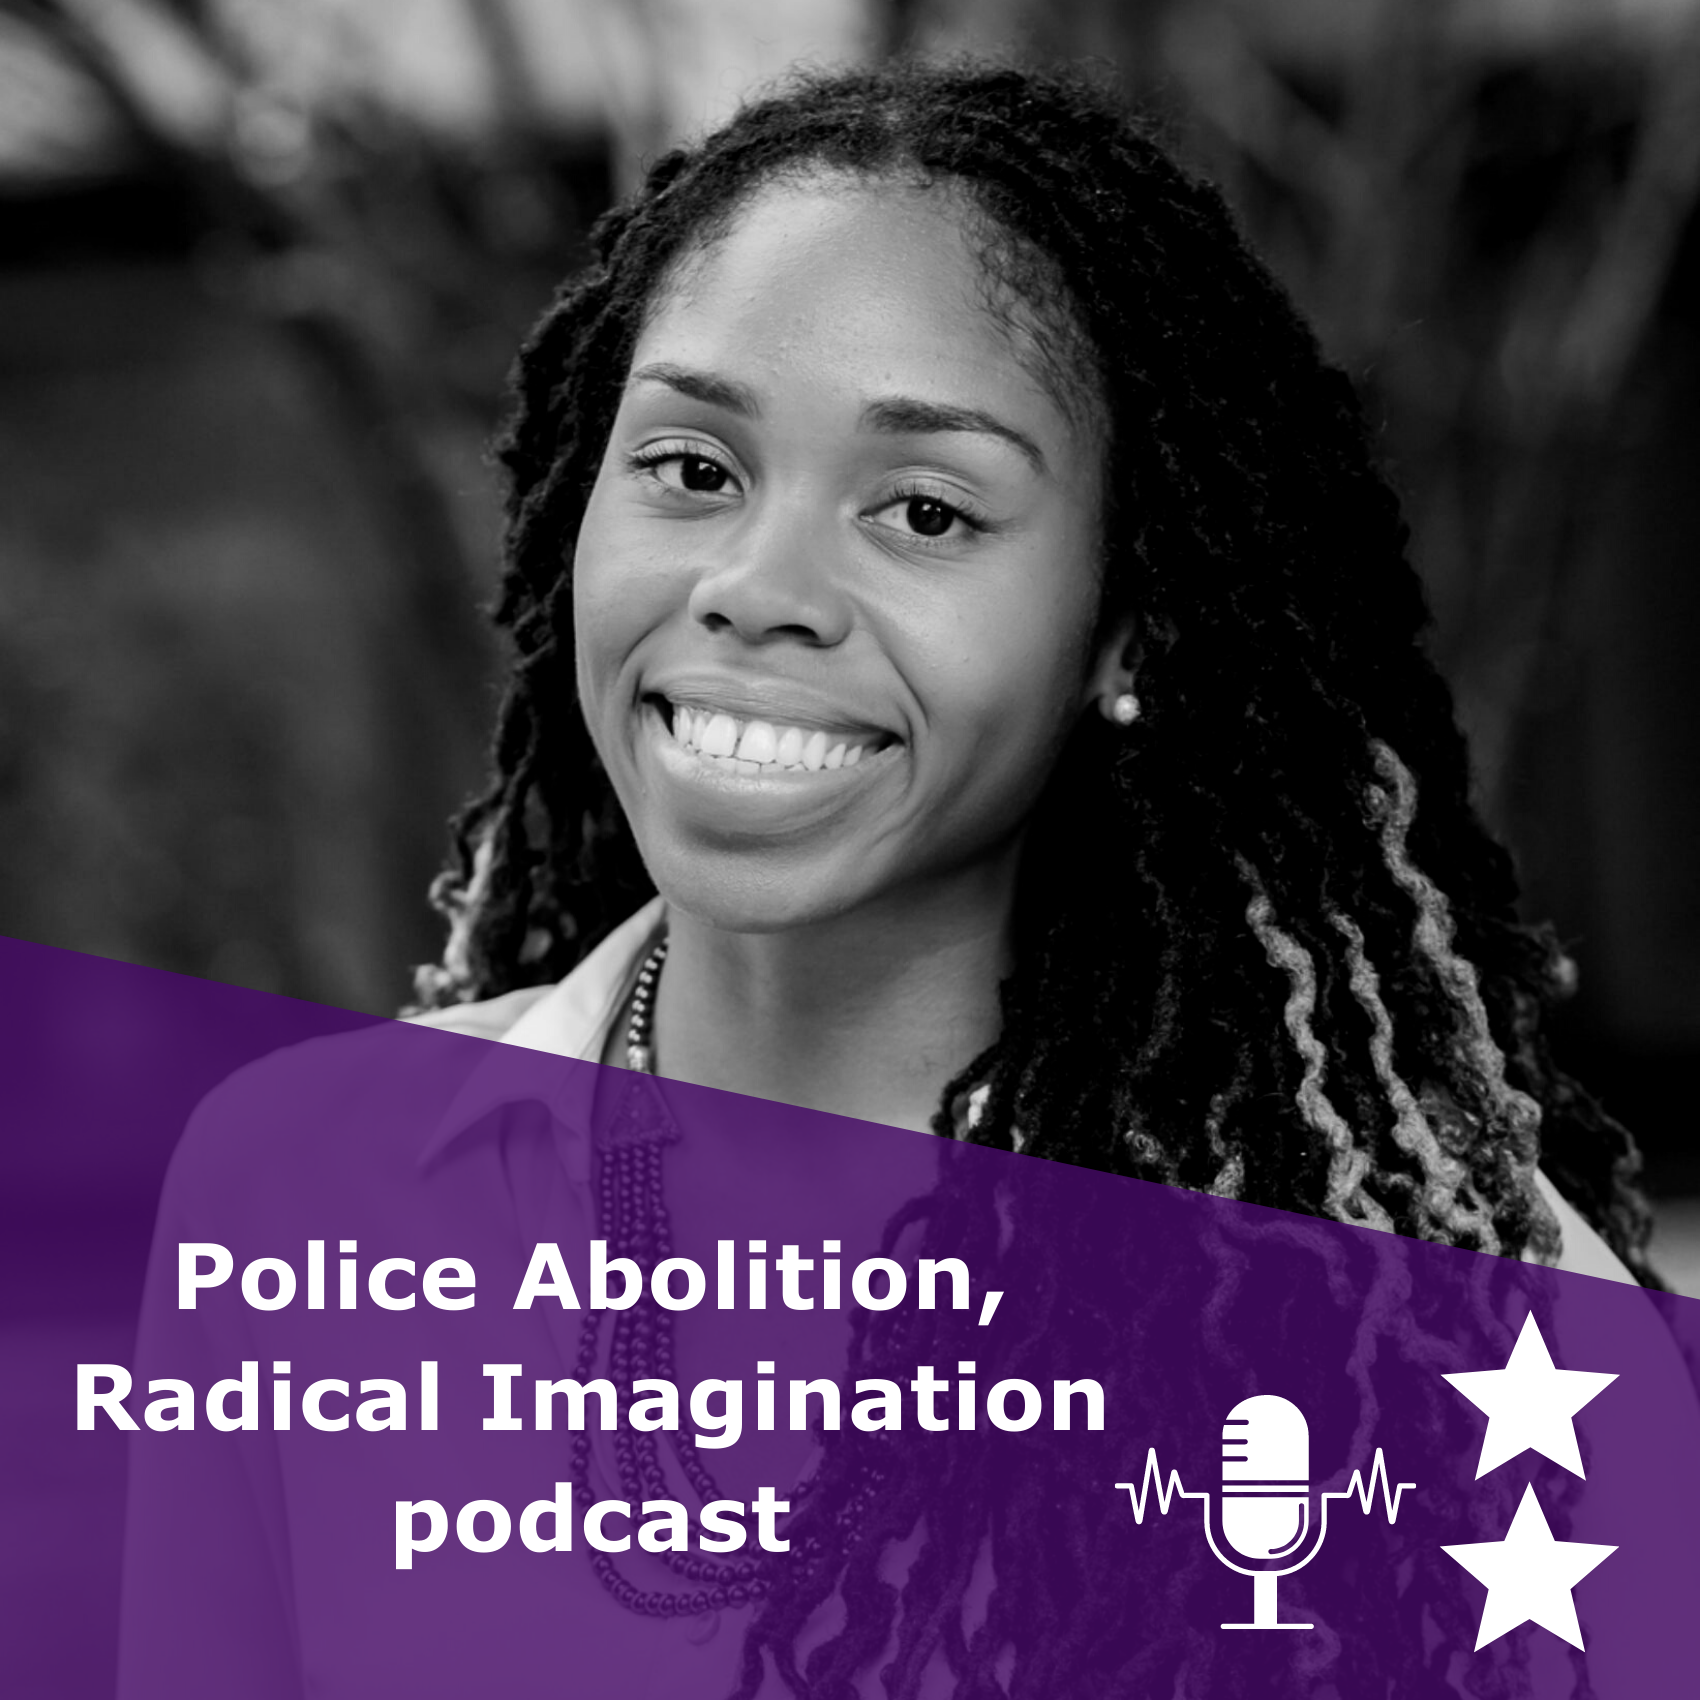 Police Abolitio‪n‬ Radical Imagination podcast rated 2 stars